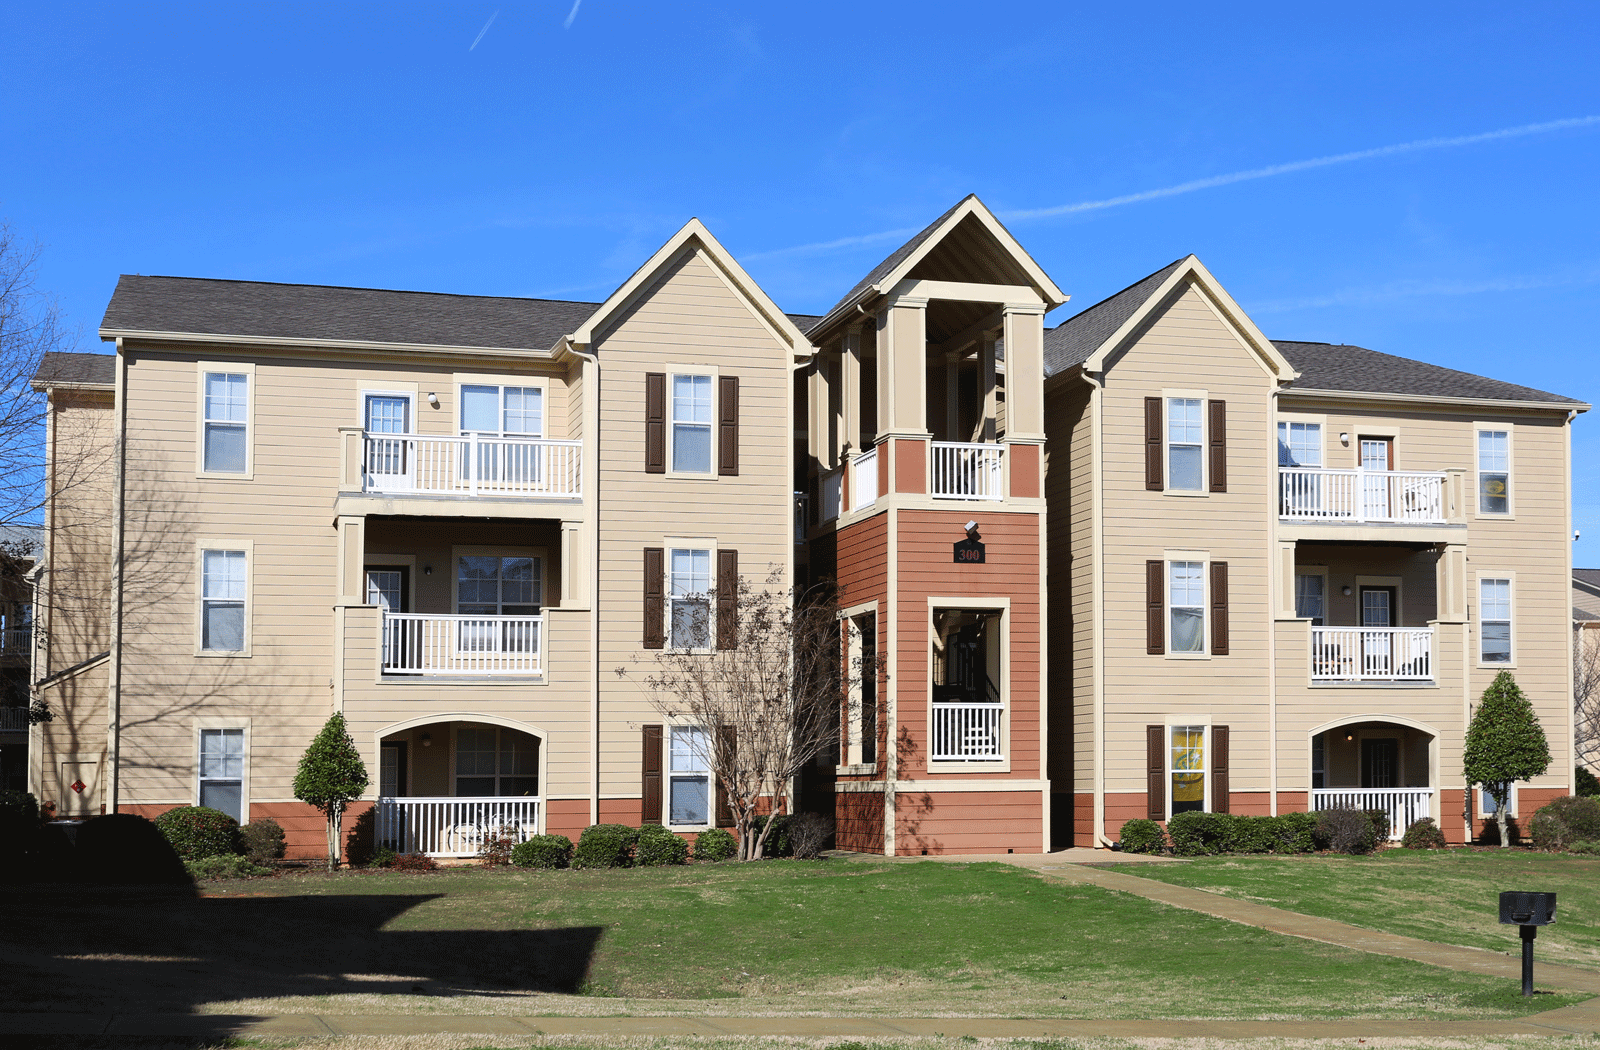 1 bedroom apartments in jacksonville alabama www - 1 bedroom apartments in jacksonville nc ...